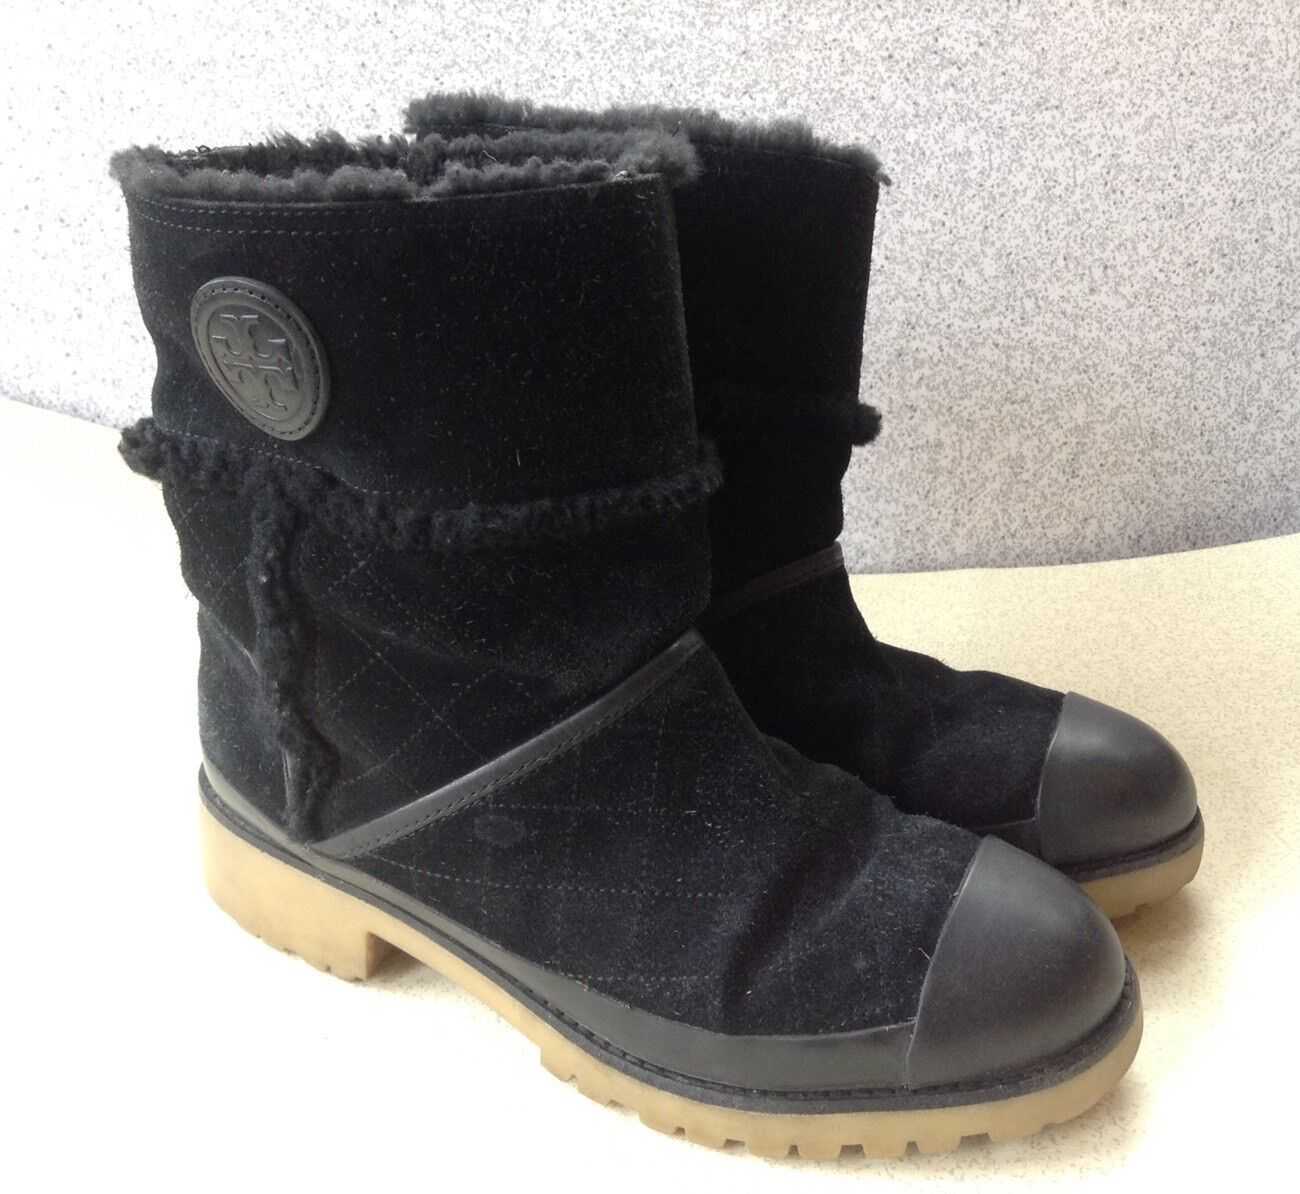 Tory Burch Women's Boots Size 9M  Boughton  Black Suede Fur Lined Chunky Heel